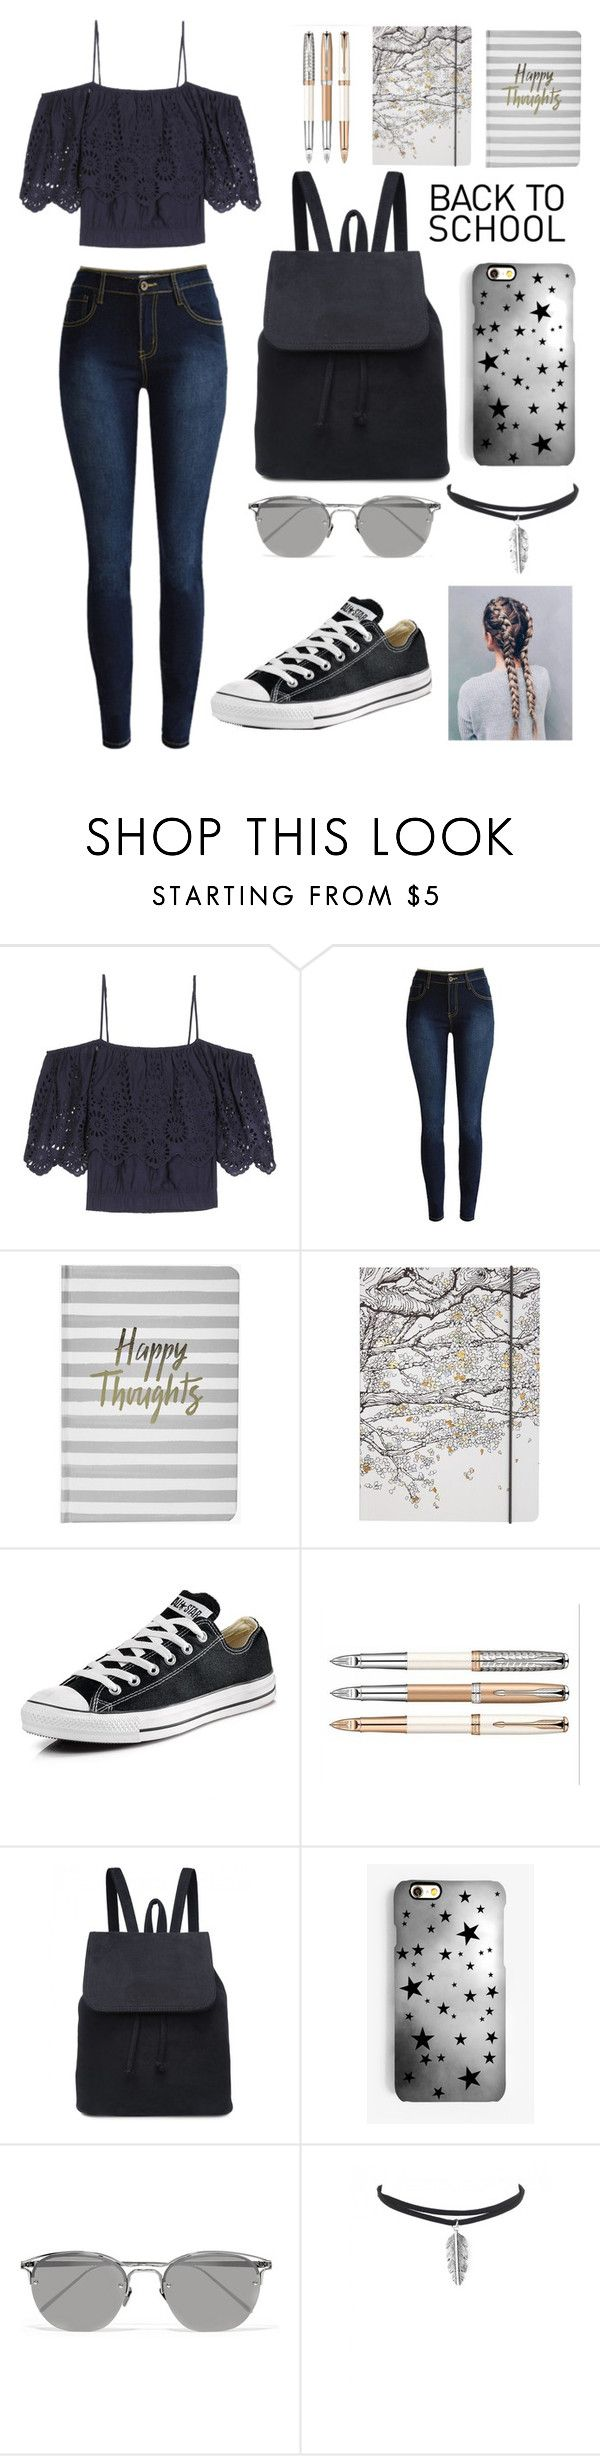 """""""Back To School Outfit"""" by kirsty-mckenzie44 ❤ liked on Polyvore featuring Ganni, Boohoo, Go Stationery, Converse, Rianna Phillips and Linda Farrow"""